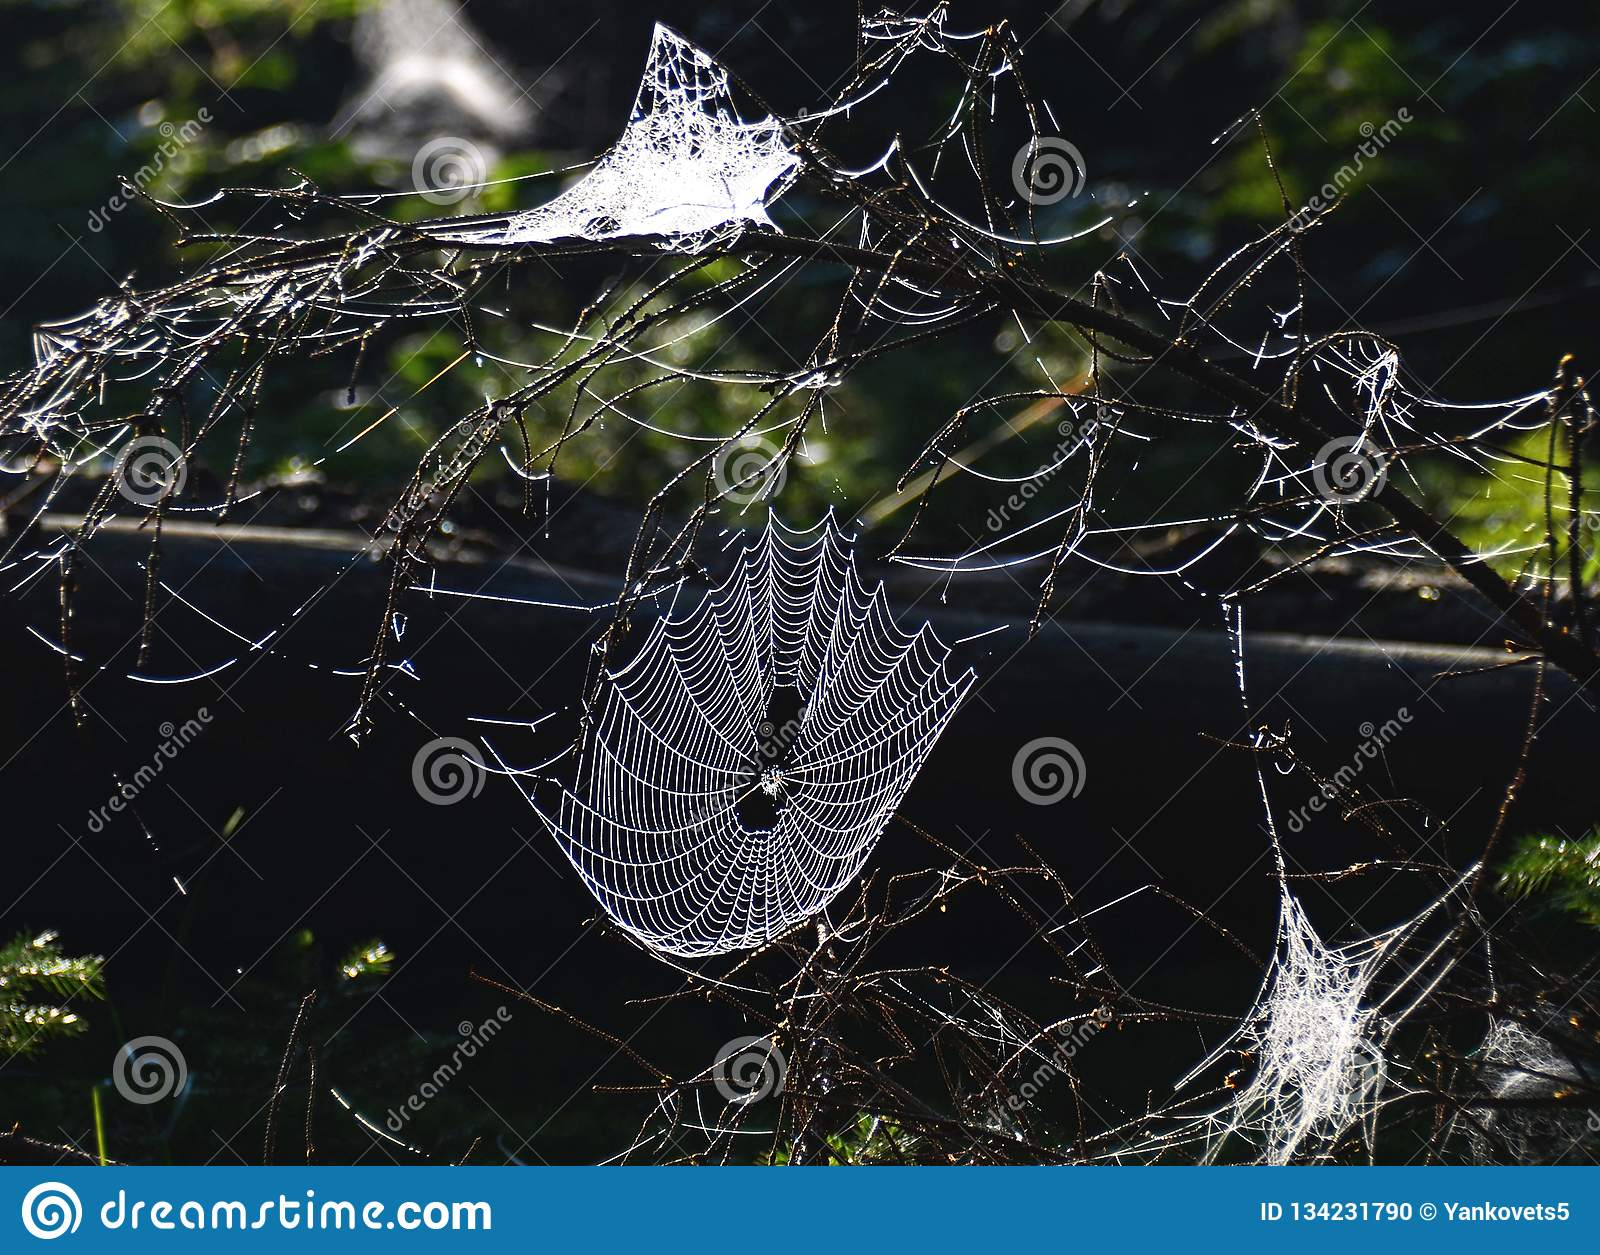 Web de aranha transparente no luminoso na floresta